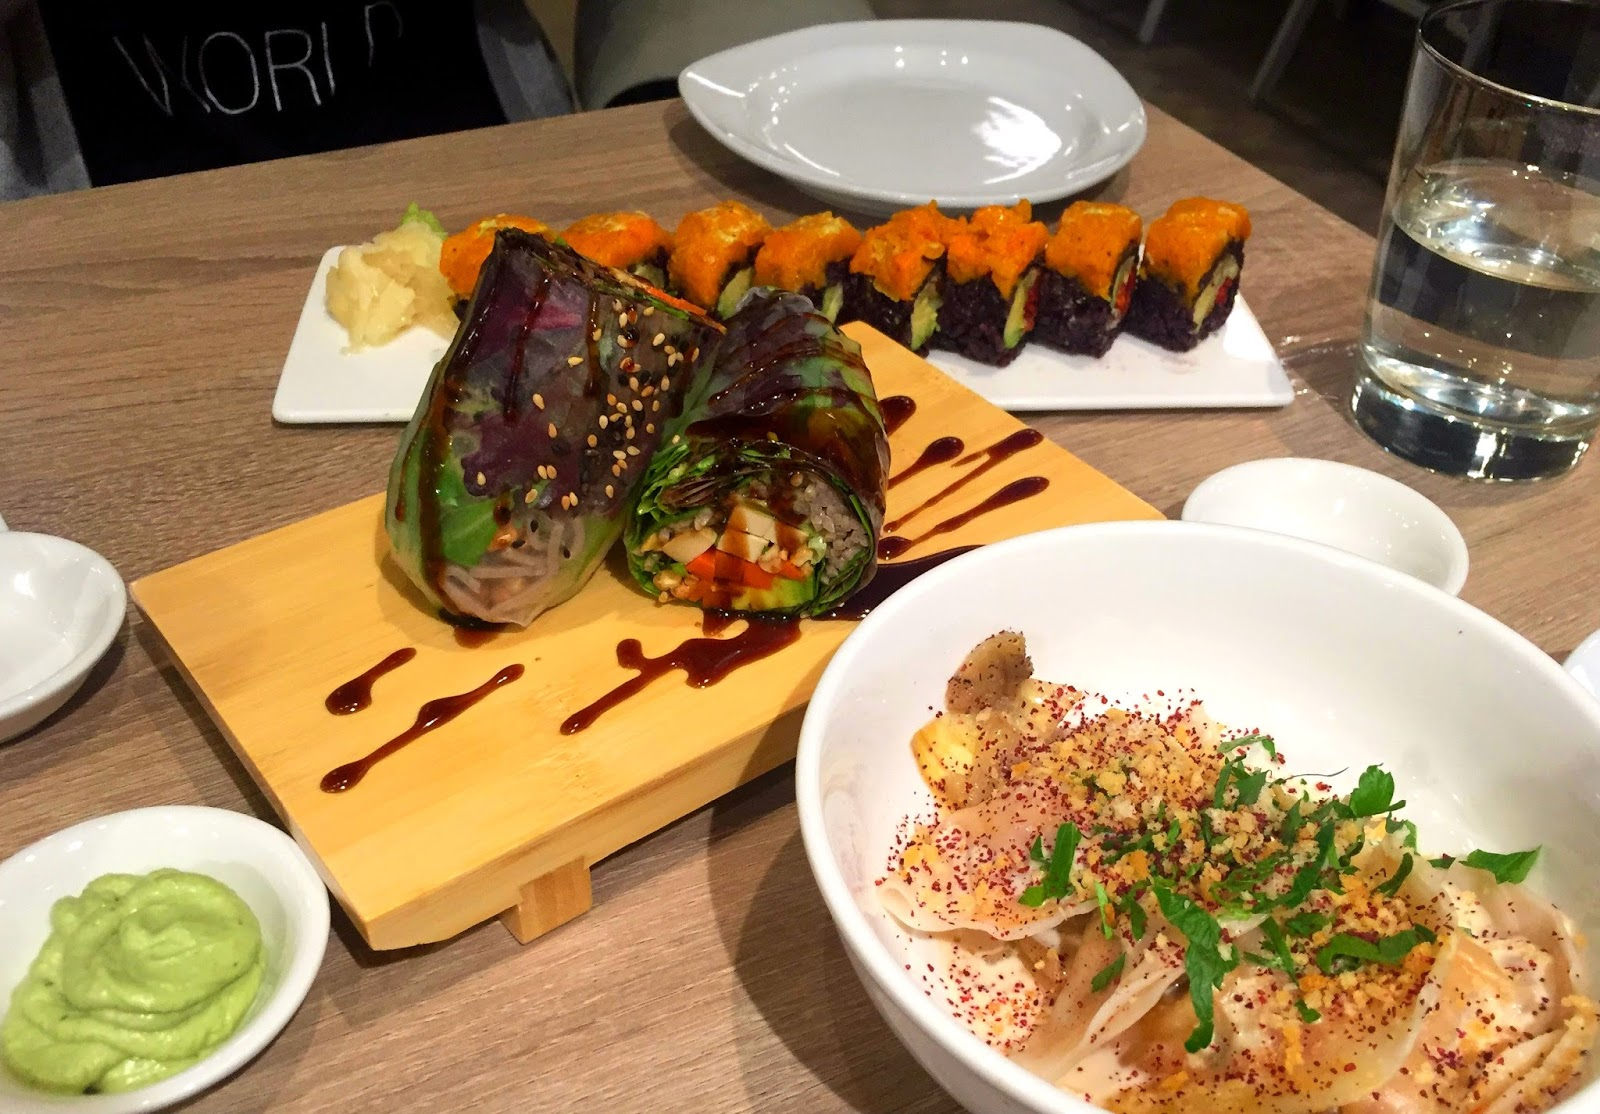 Beyond Sushi Midtown New York - Vegan Restaurant in New York - Vegan Sushi Bar NYC